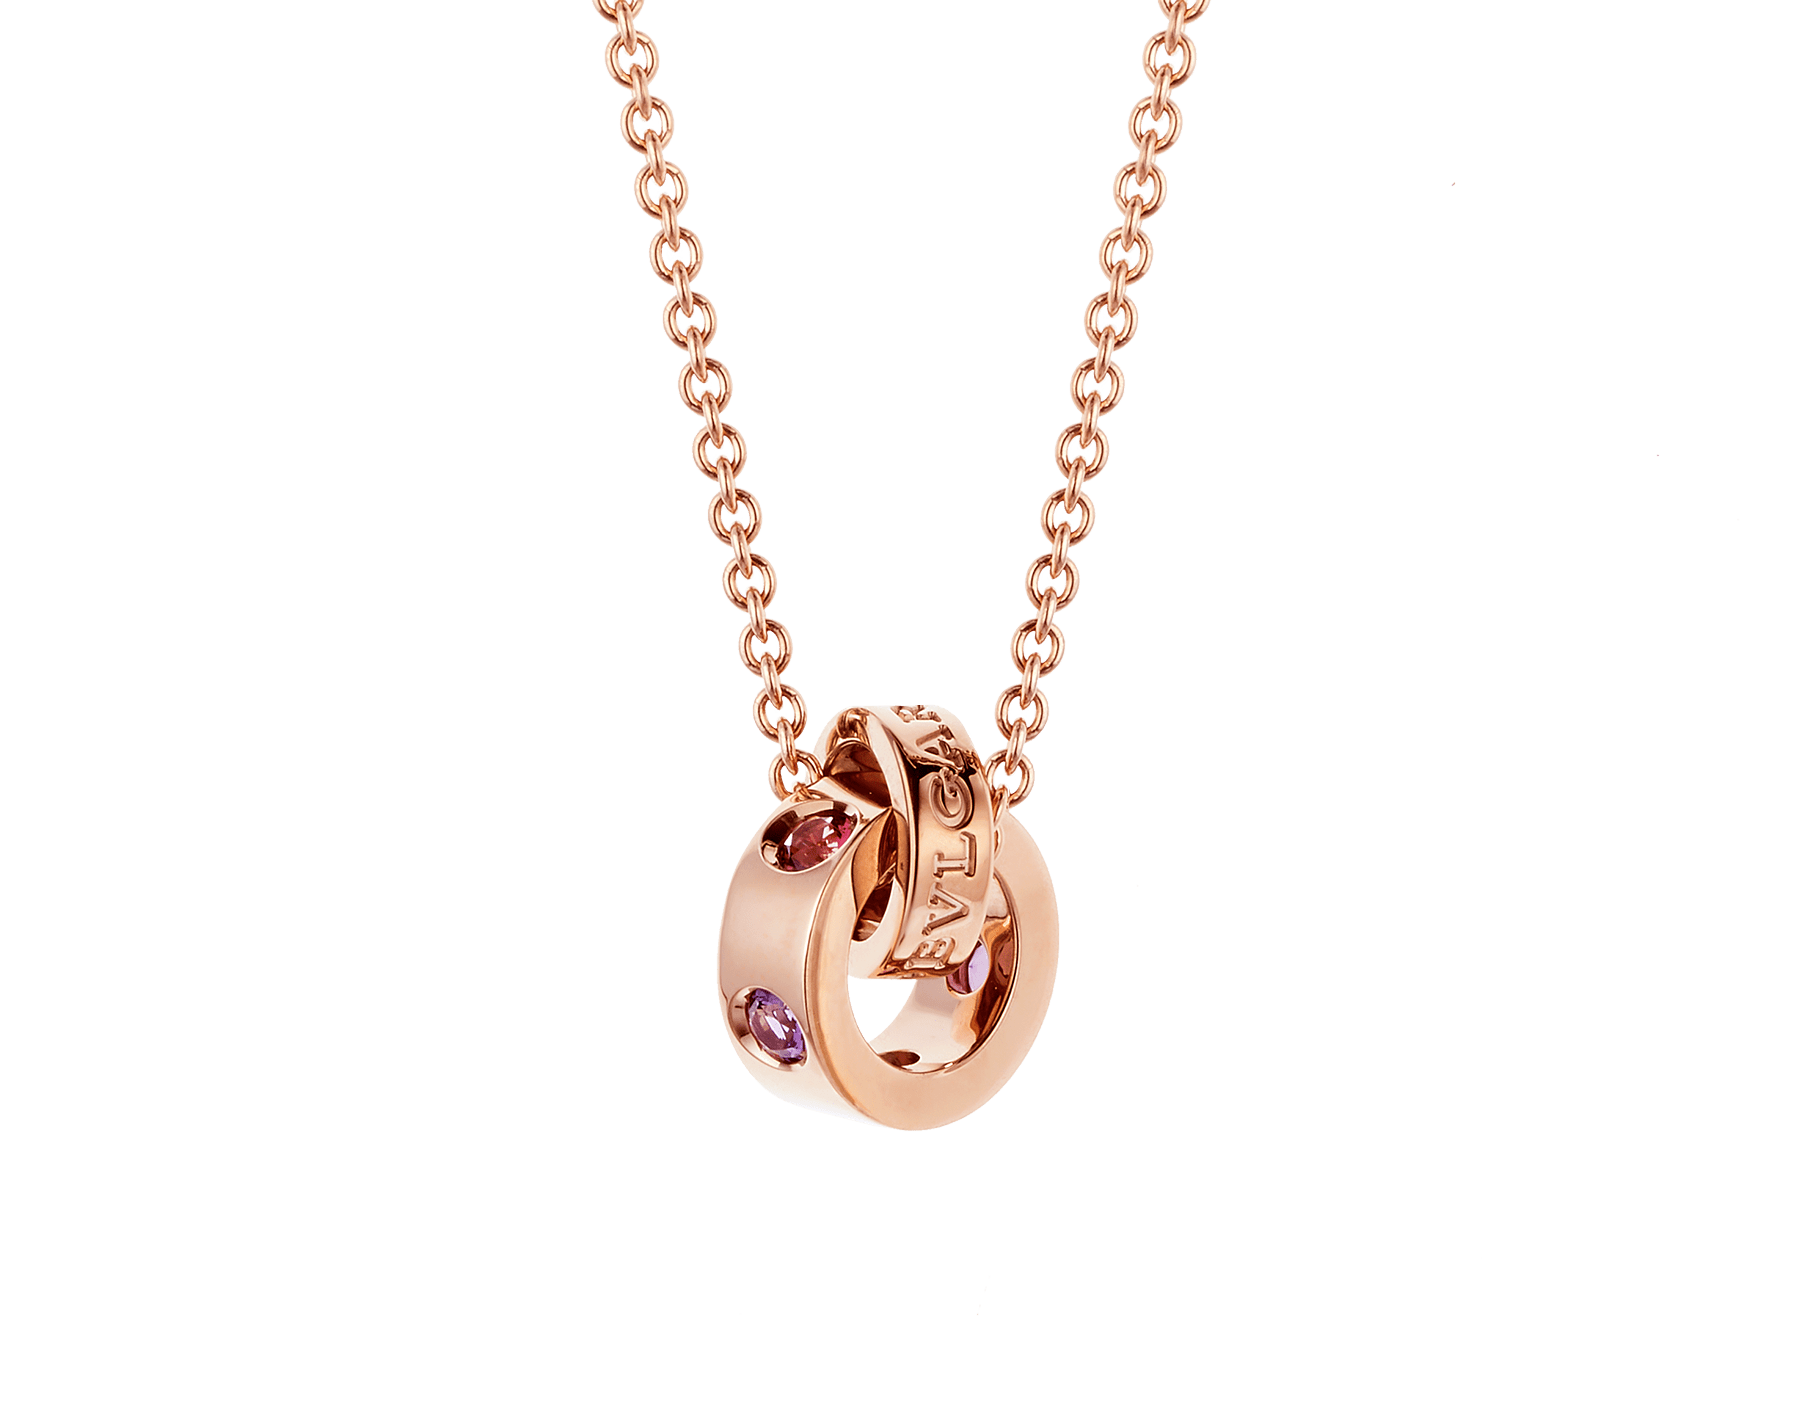 BVLGARI BVLGARI necklace with 18 kt rose gold chain and 18 kt rose gold pendant set with amethysts and pink tourmalines 352618 image 1